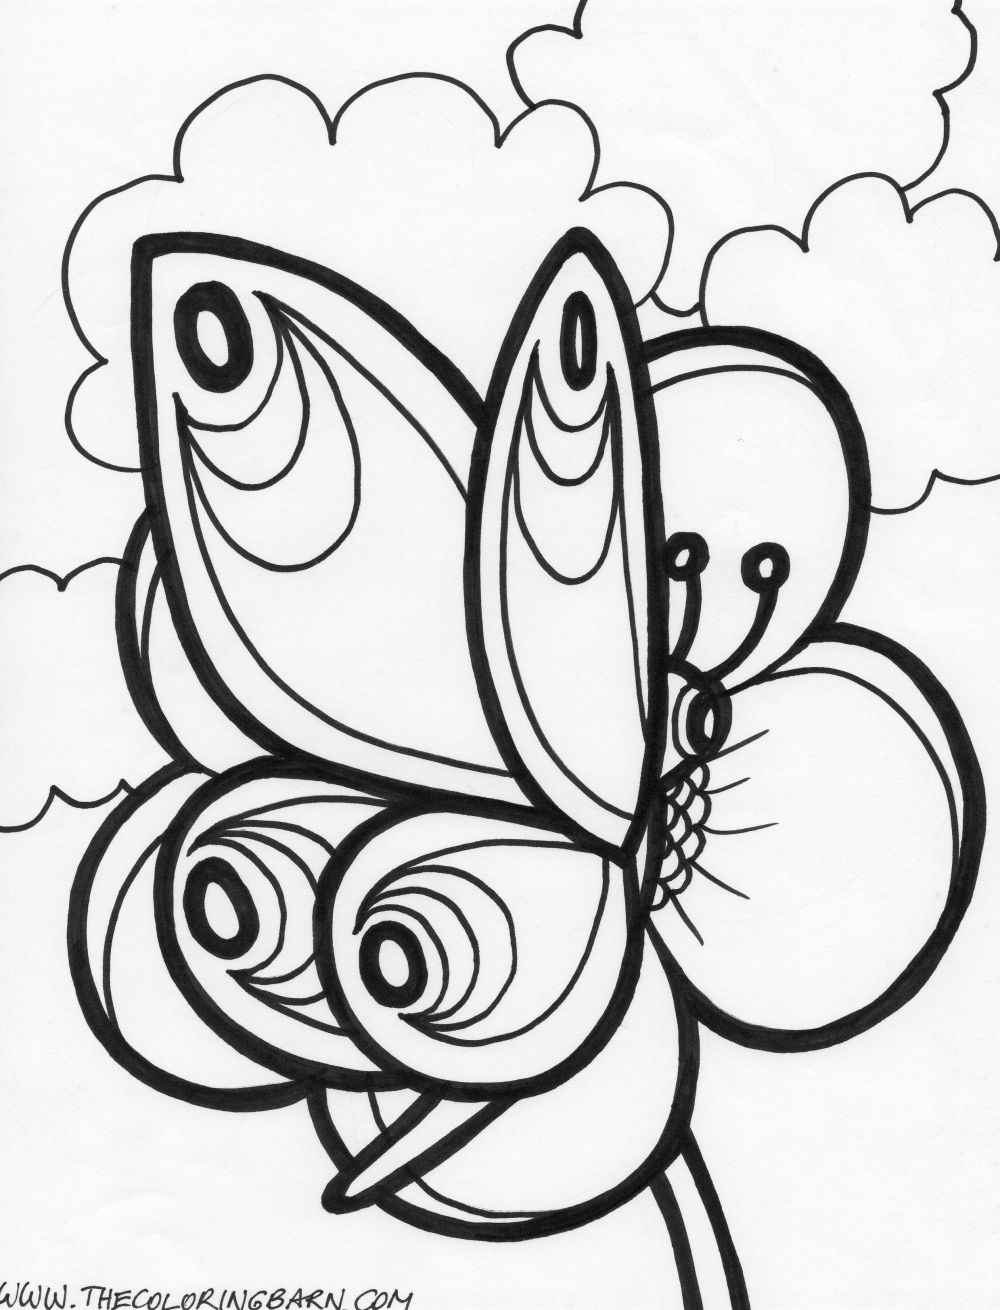 Endless Creations with Butterfly Coloring Pages Free Printable